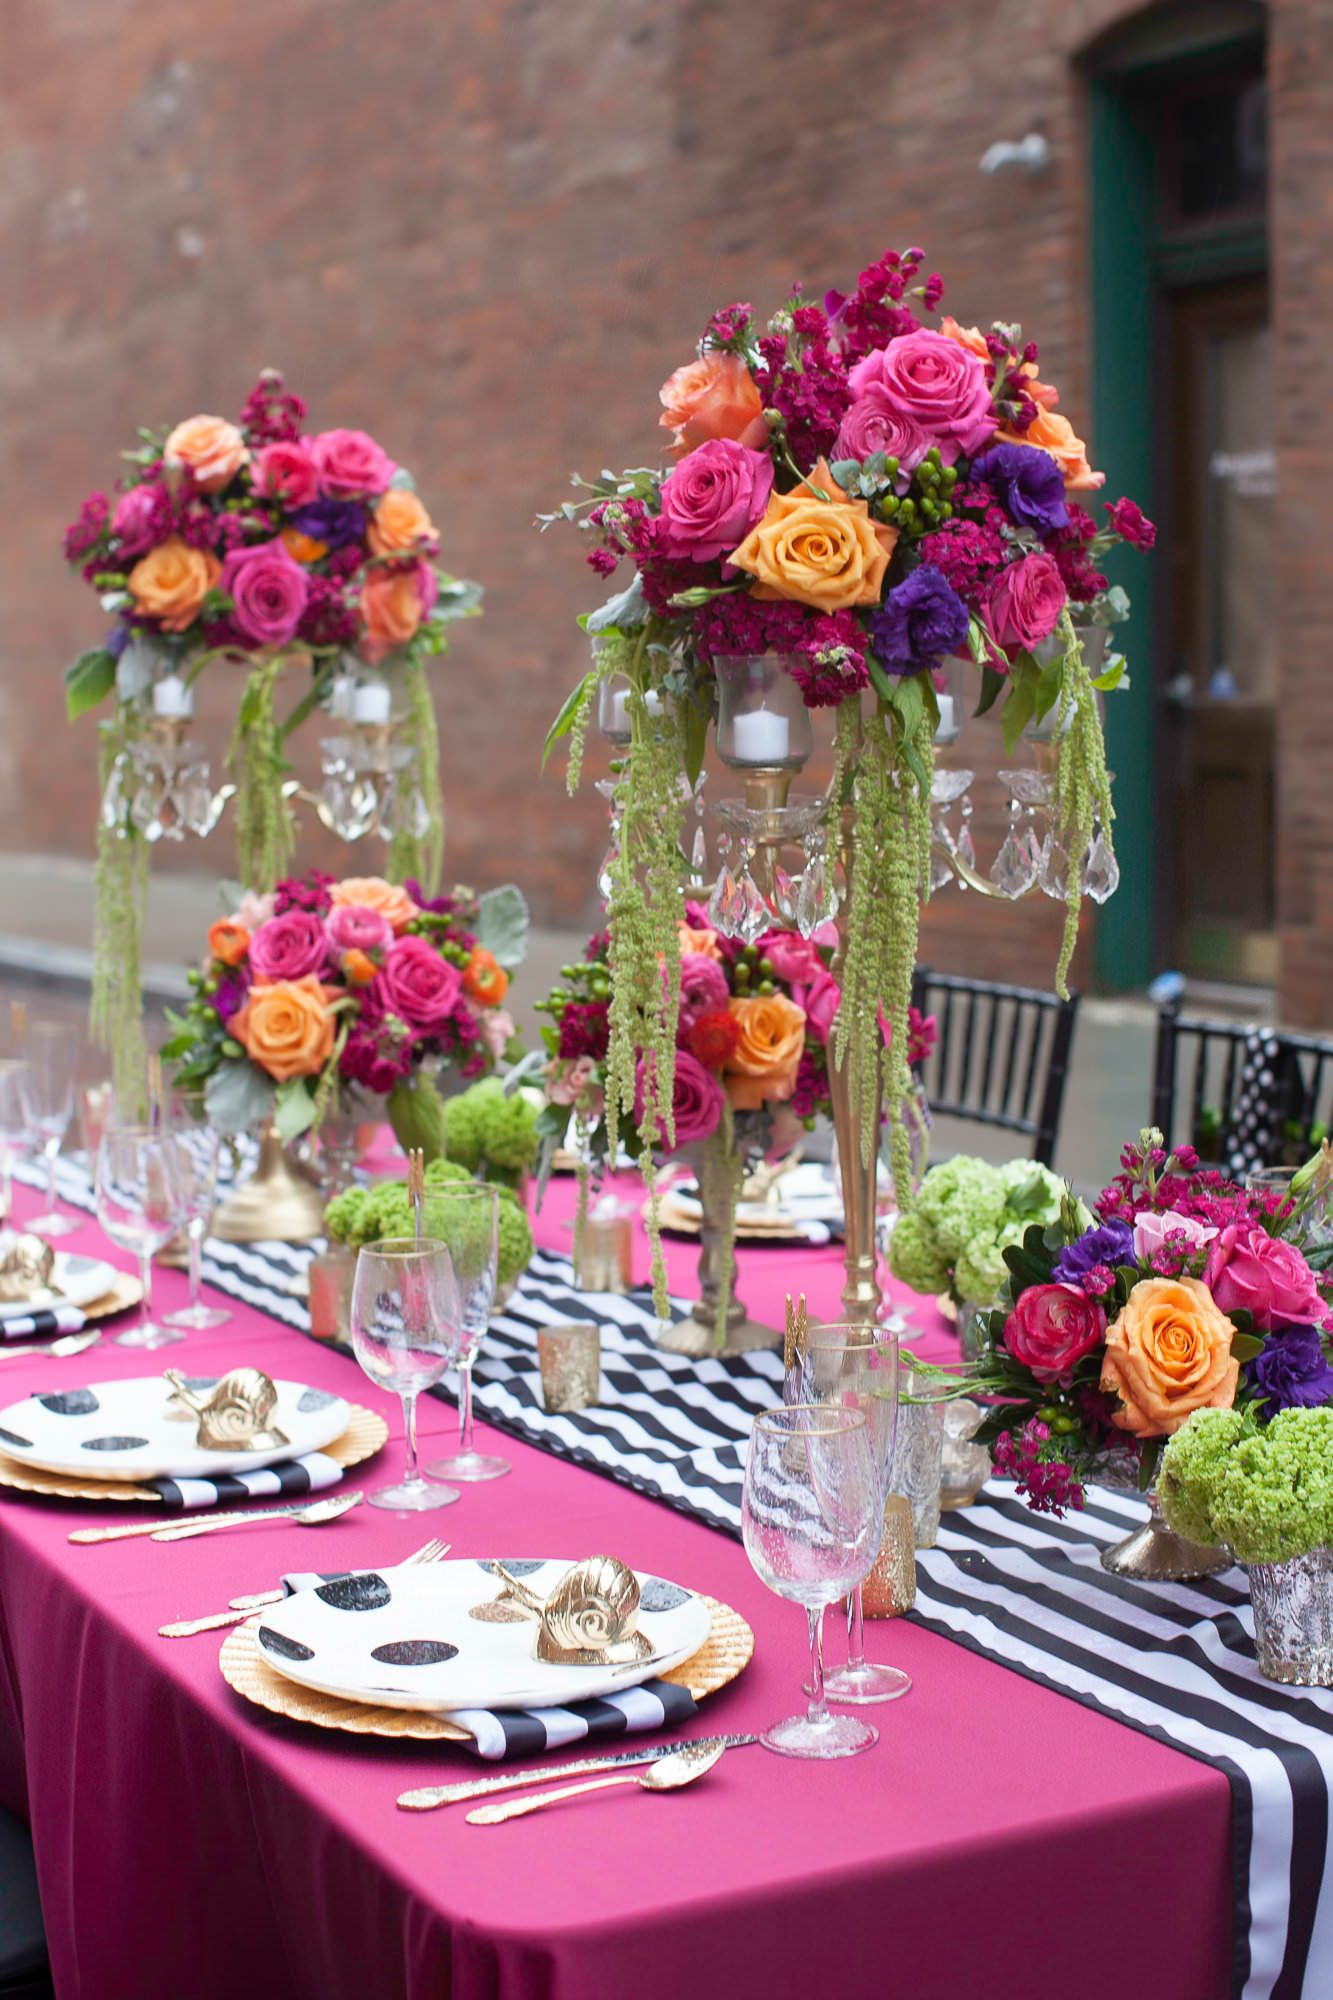 Kate Spade Inspired Wedding Tablescape With Polka Dots Stripes Image By Molly Connor